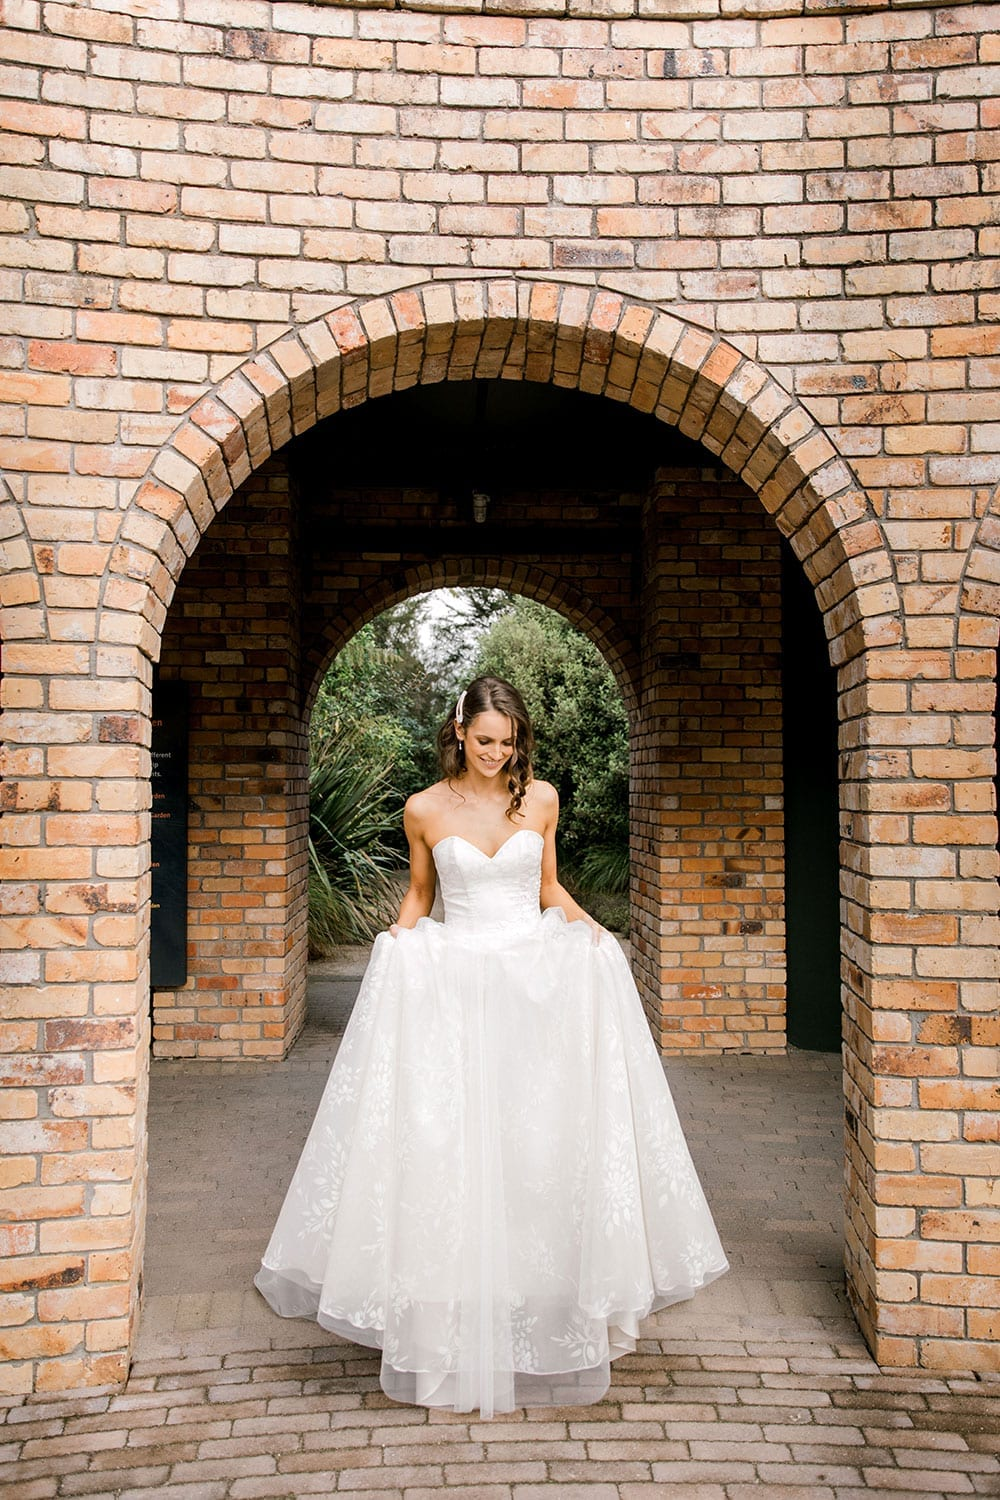 Model wearing Vinka Design Jasmine Wedding Dress, a Strapless Classic Wedding Gown holding out skirt in front of a brick arch in a garden